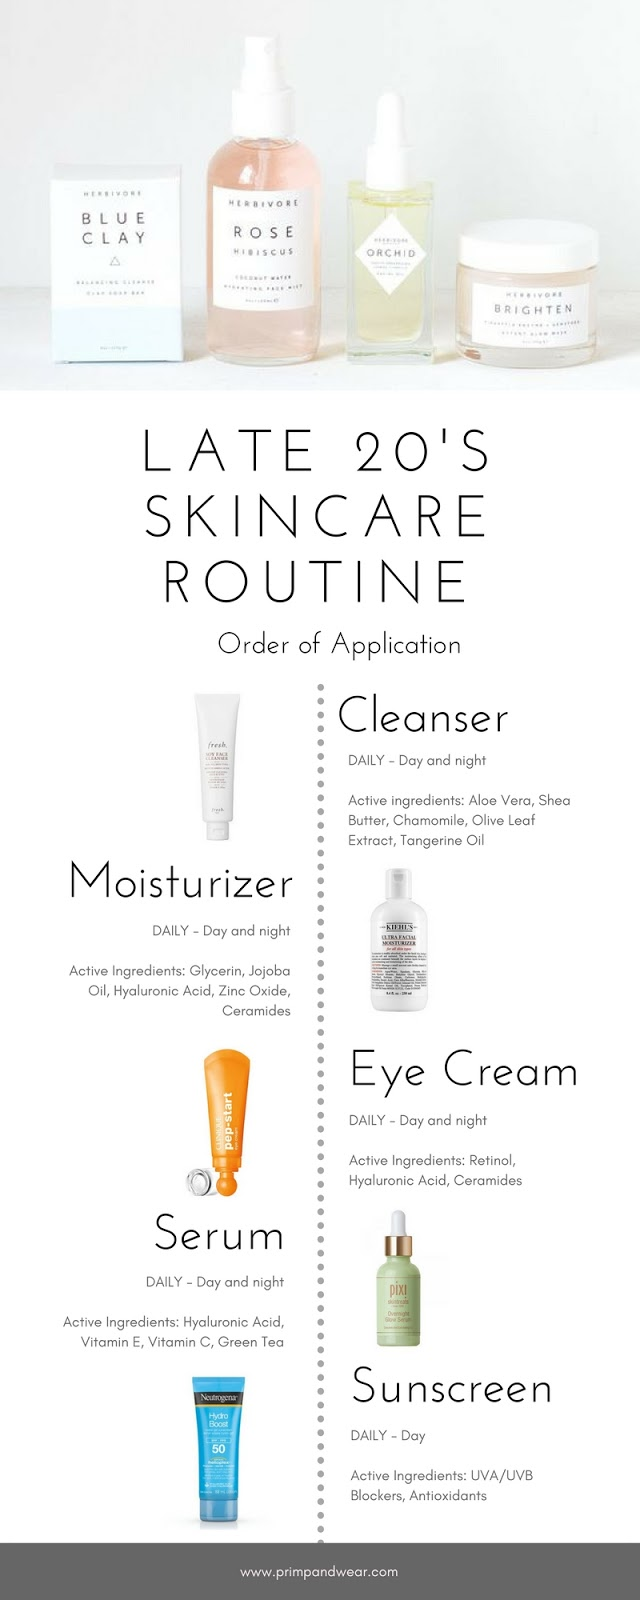 Late 20s Skincare Routine